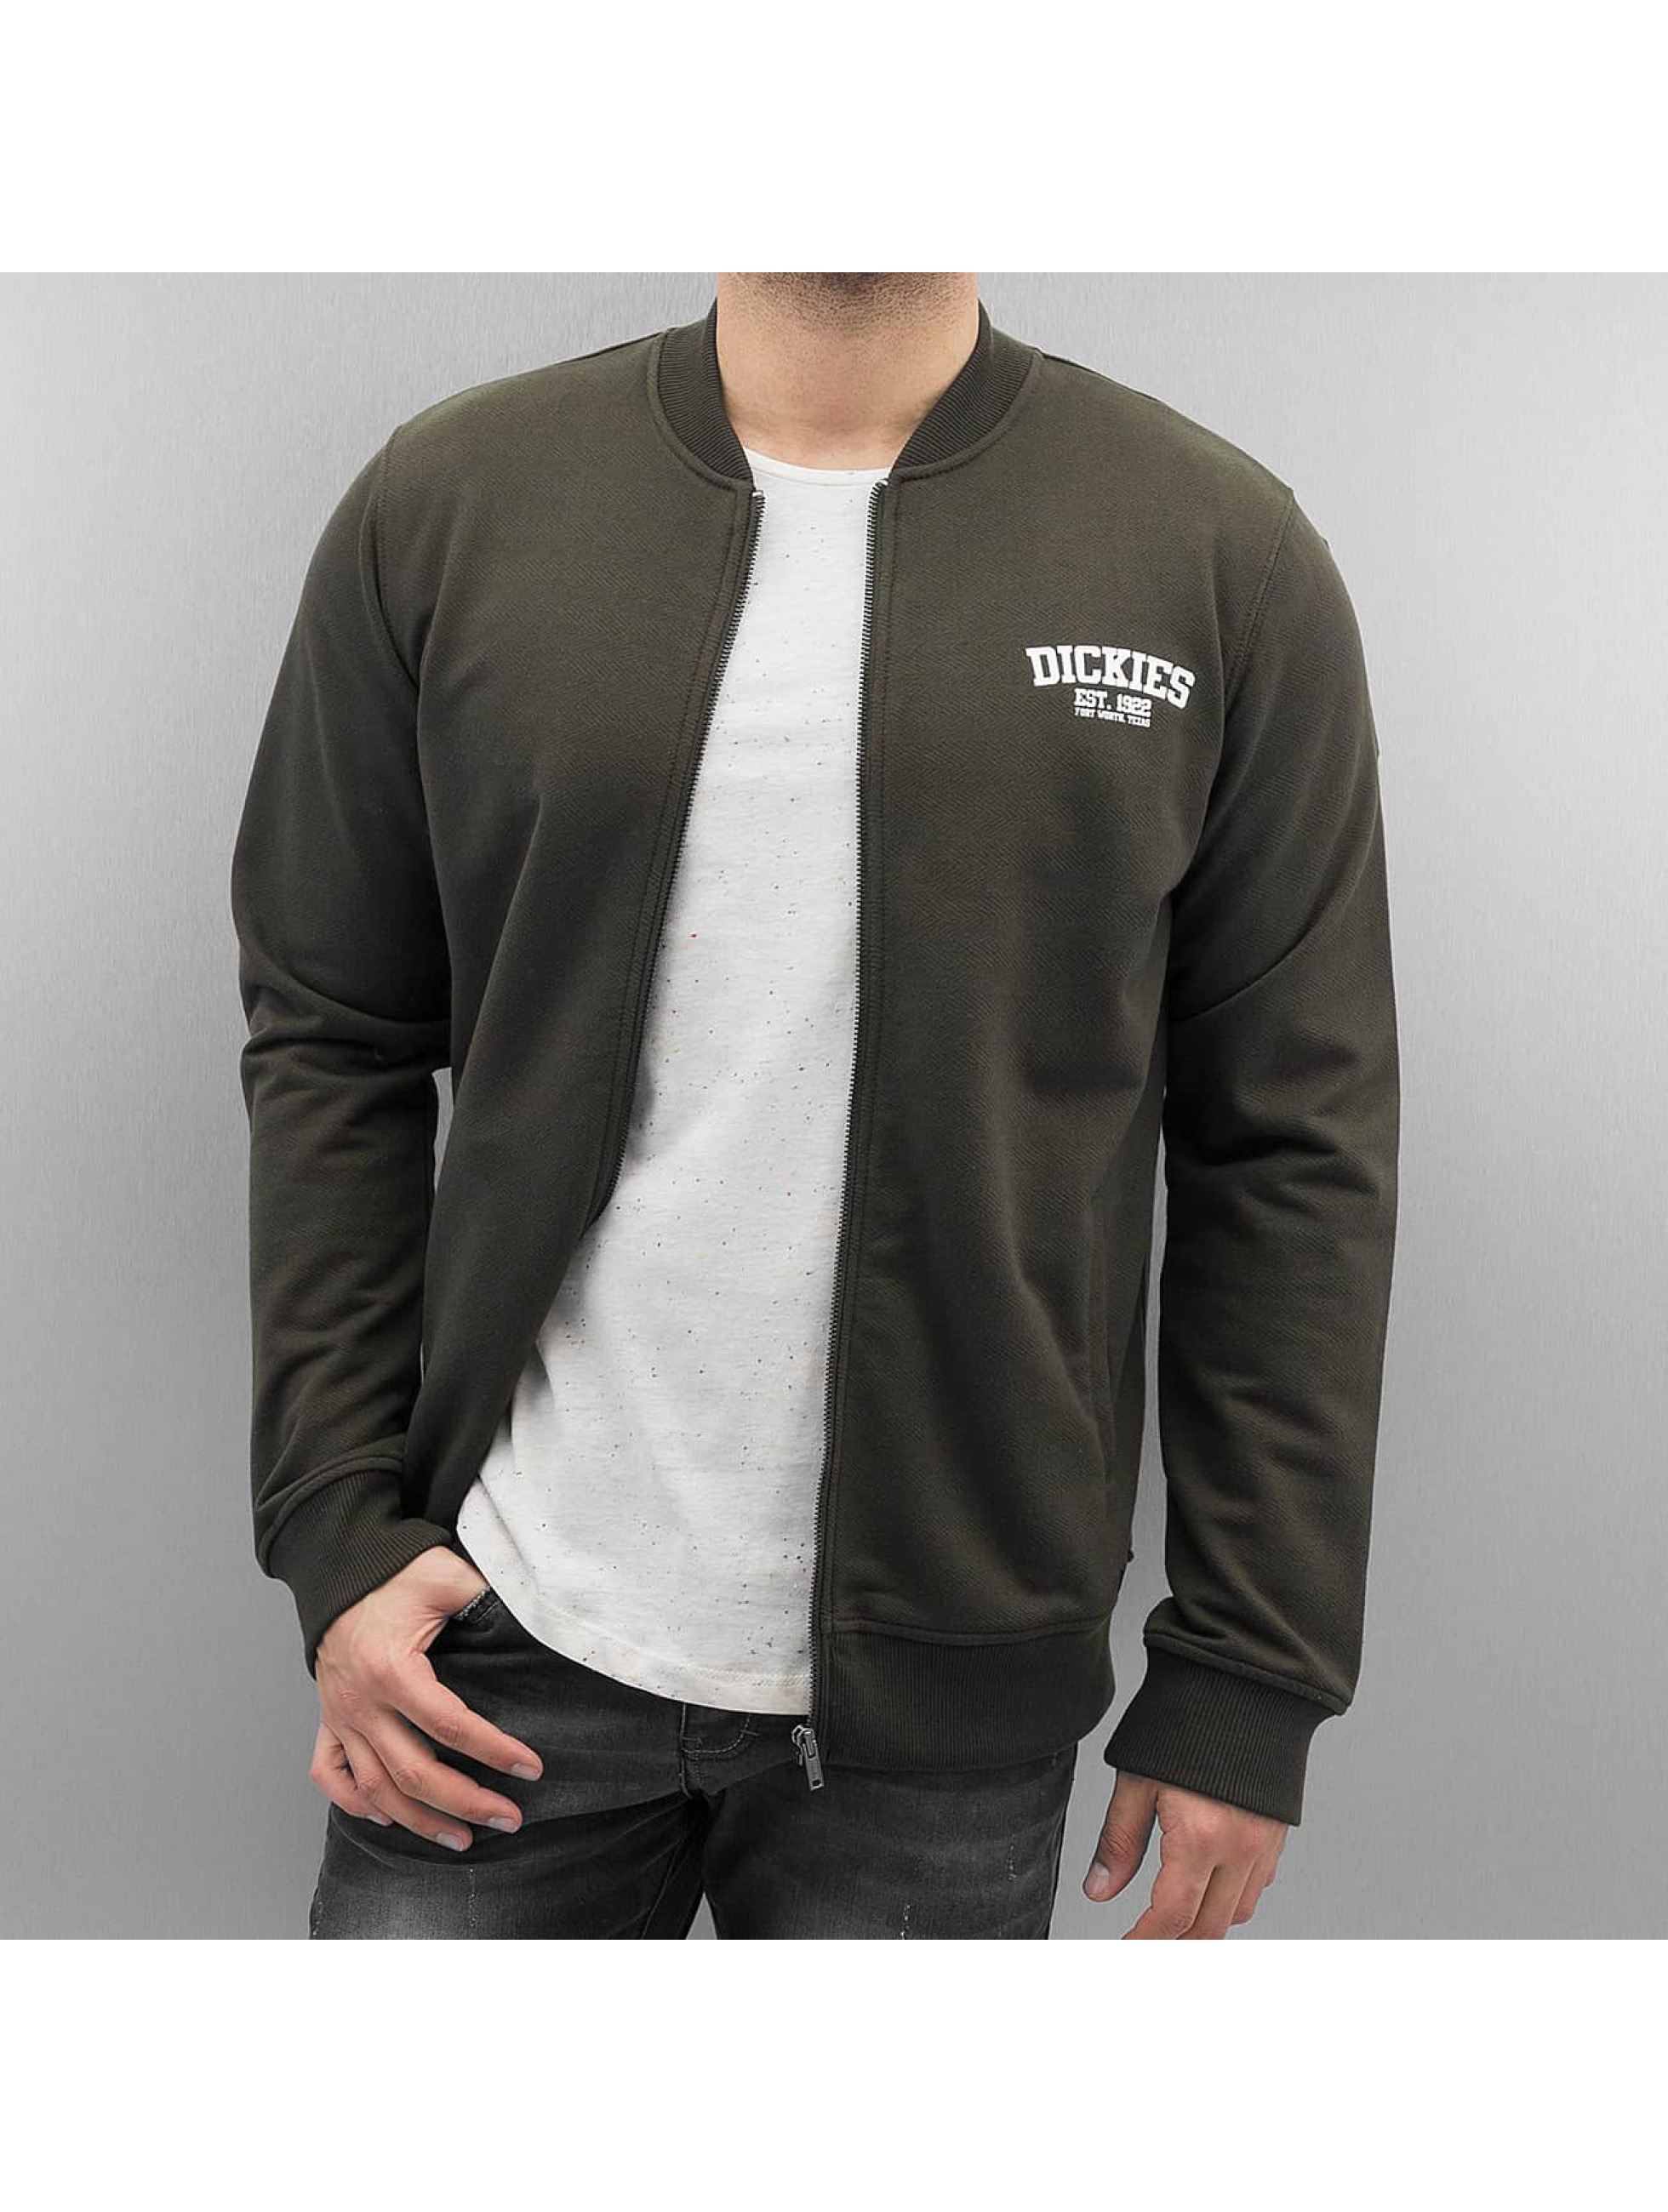 Dickies-Uomini-Giacche-Giacca-Mezza-Stagione-Pineville